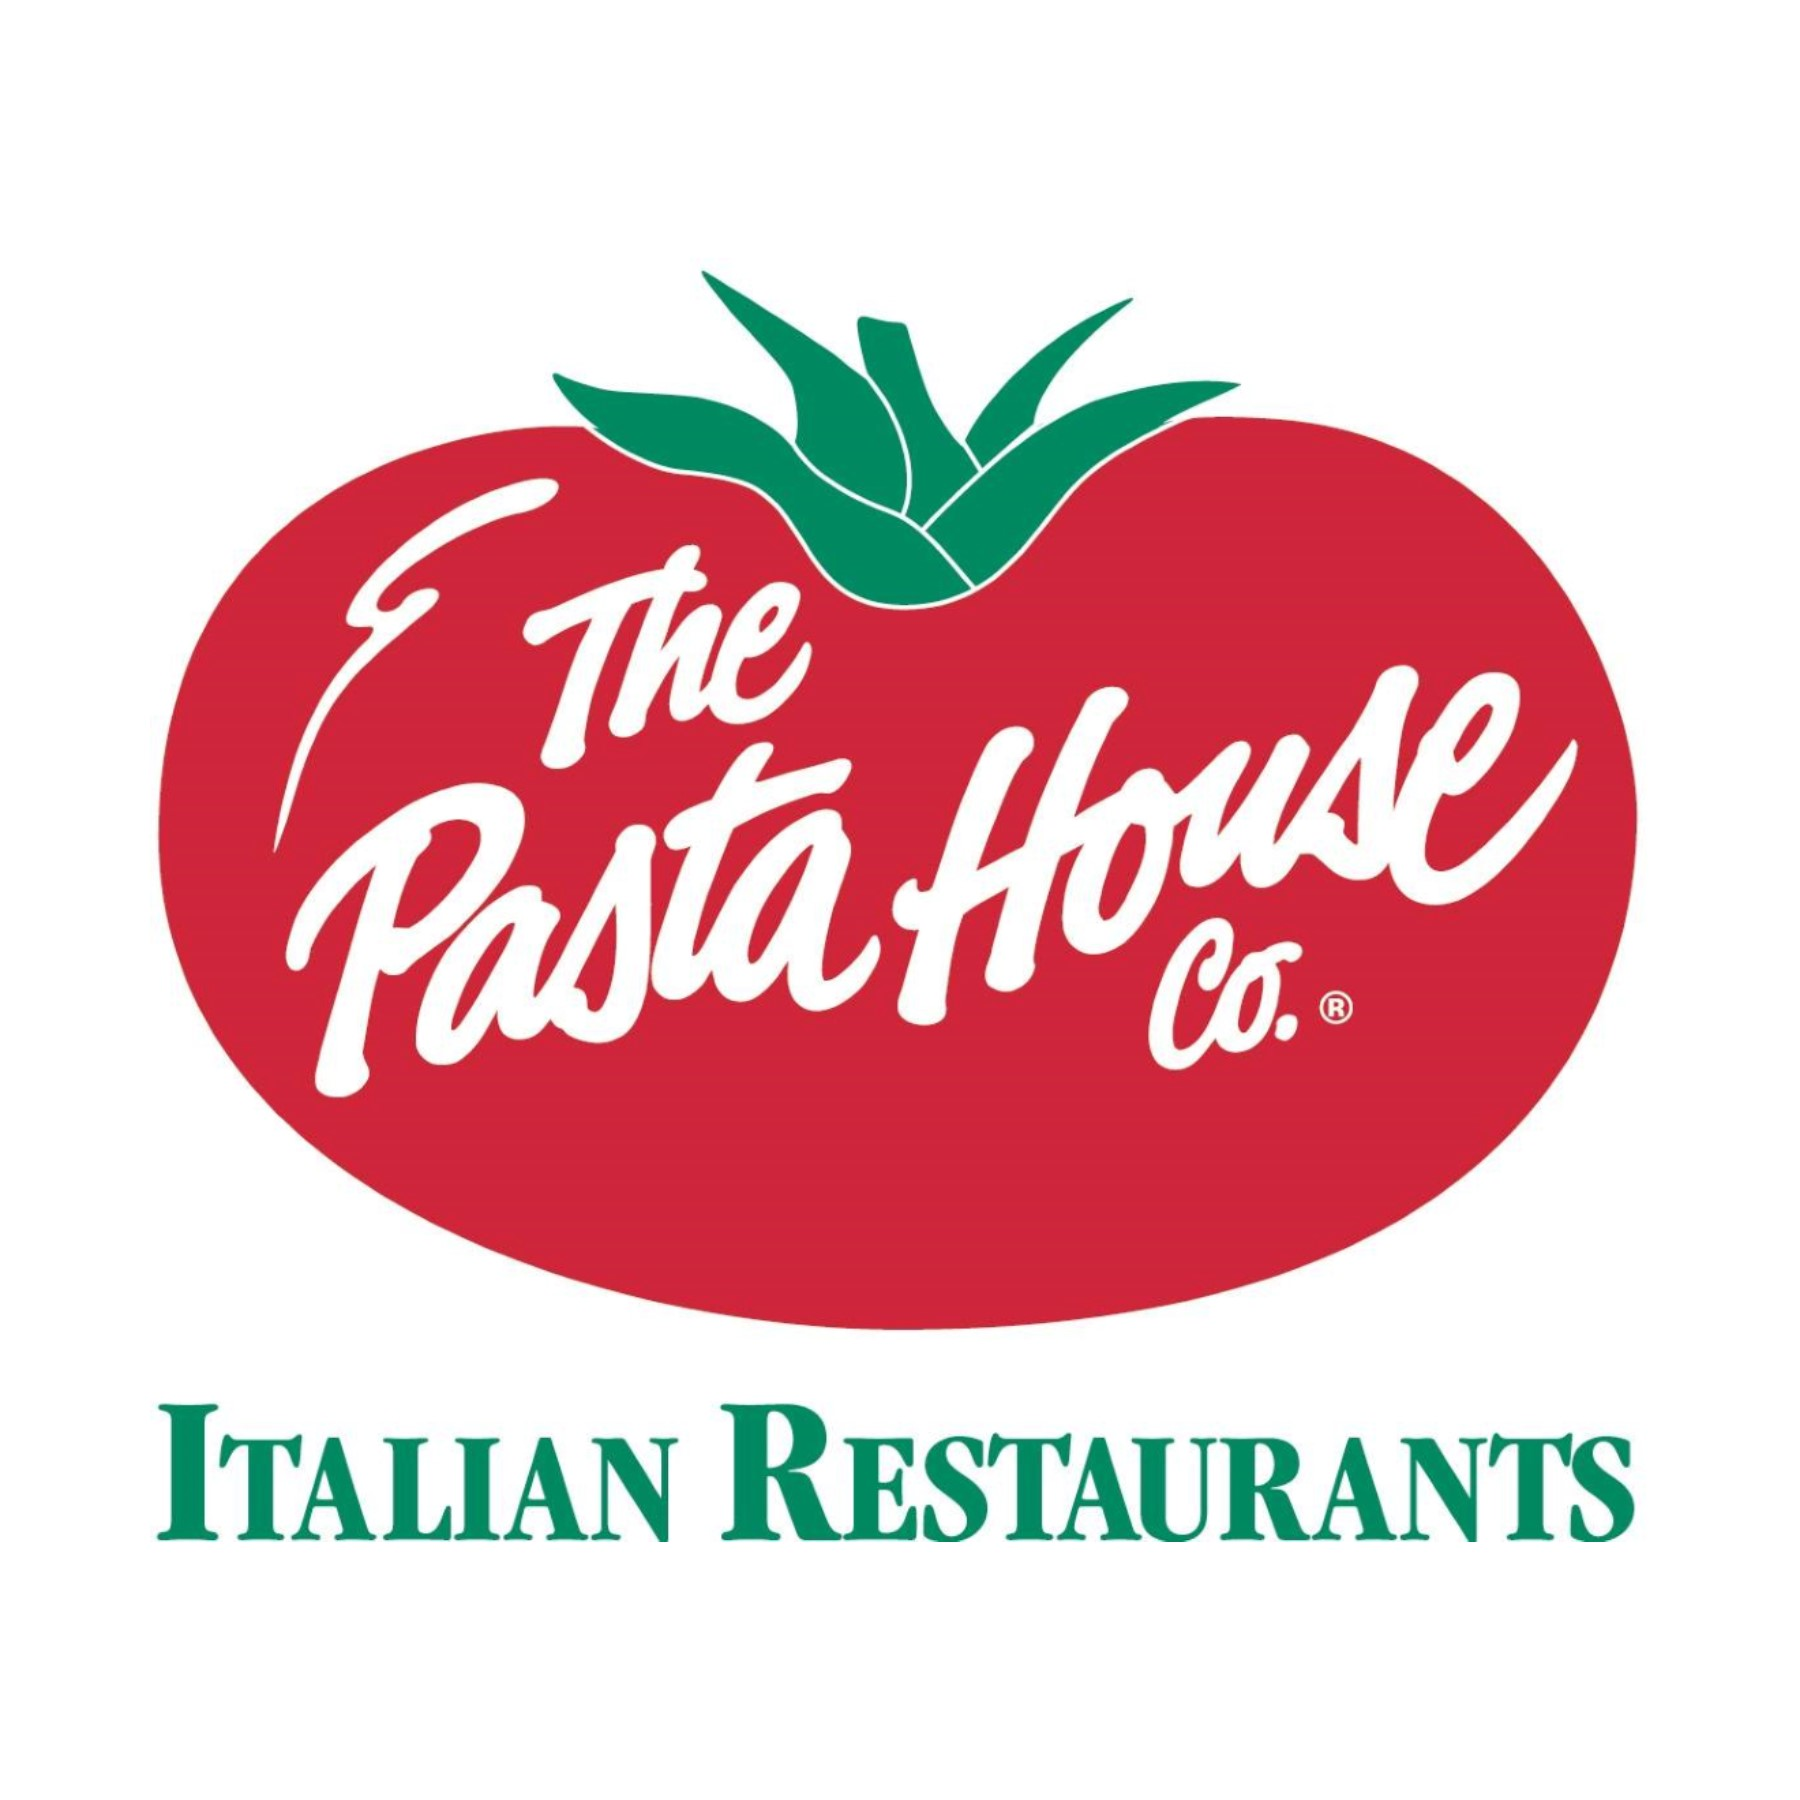 The Pasta House Co..jpg